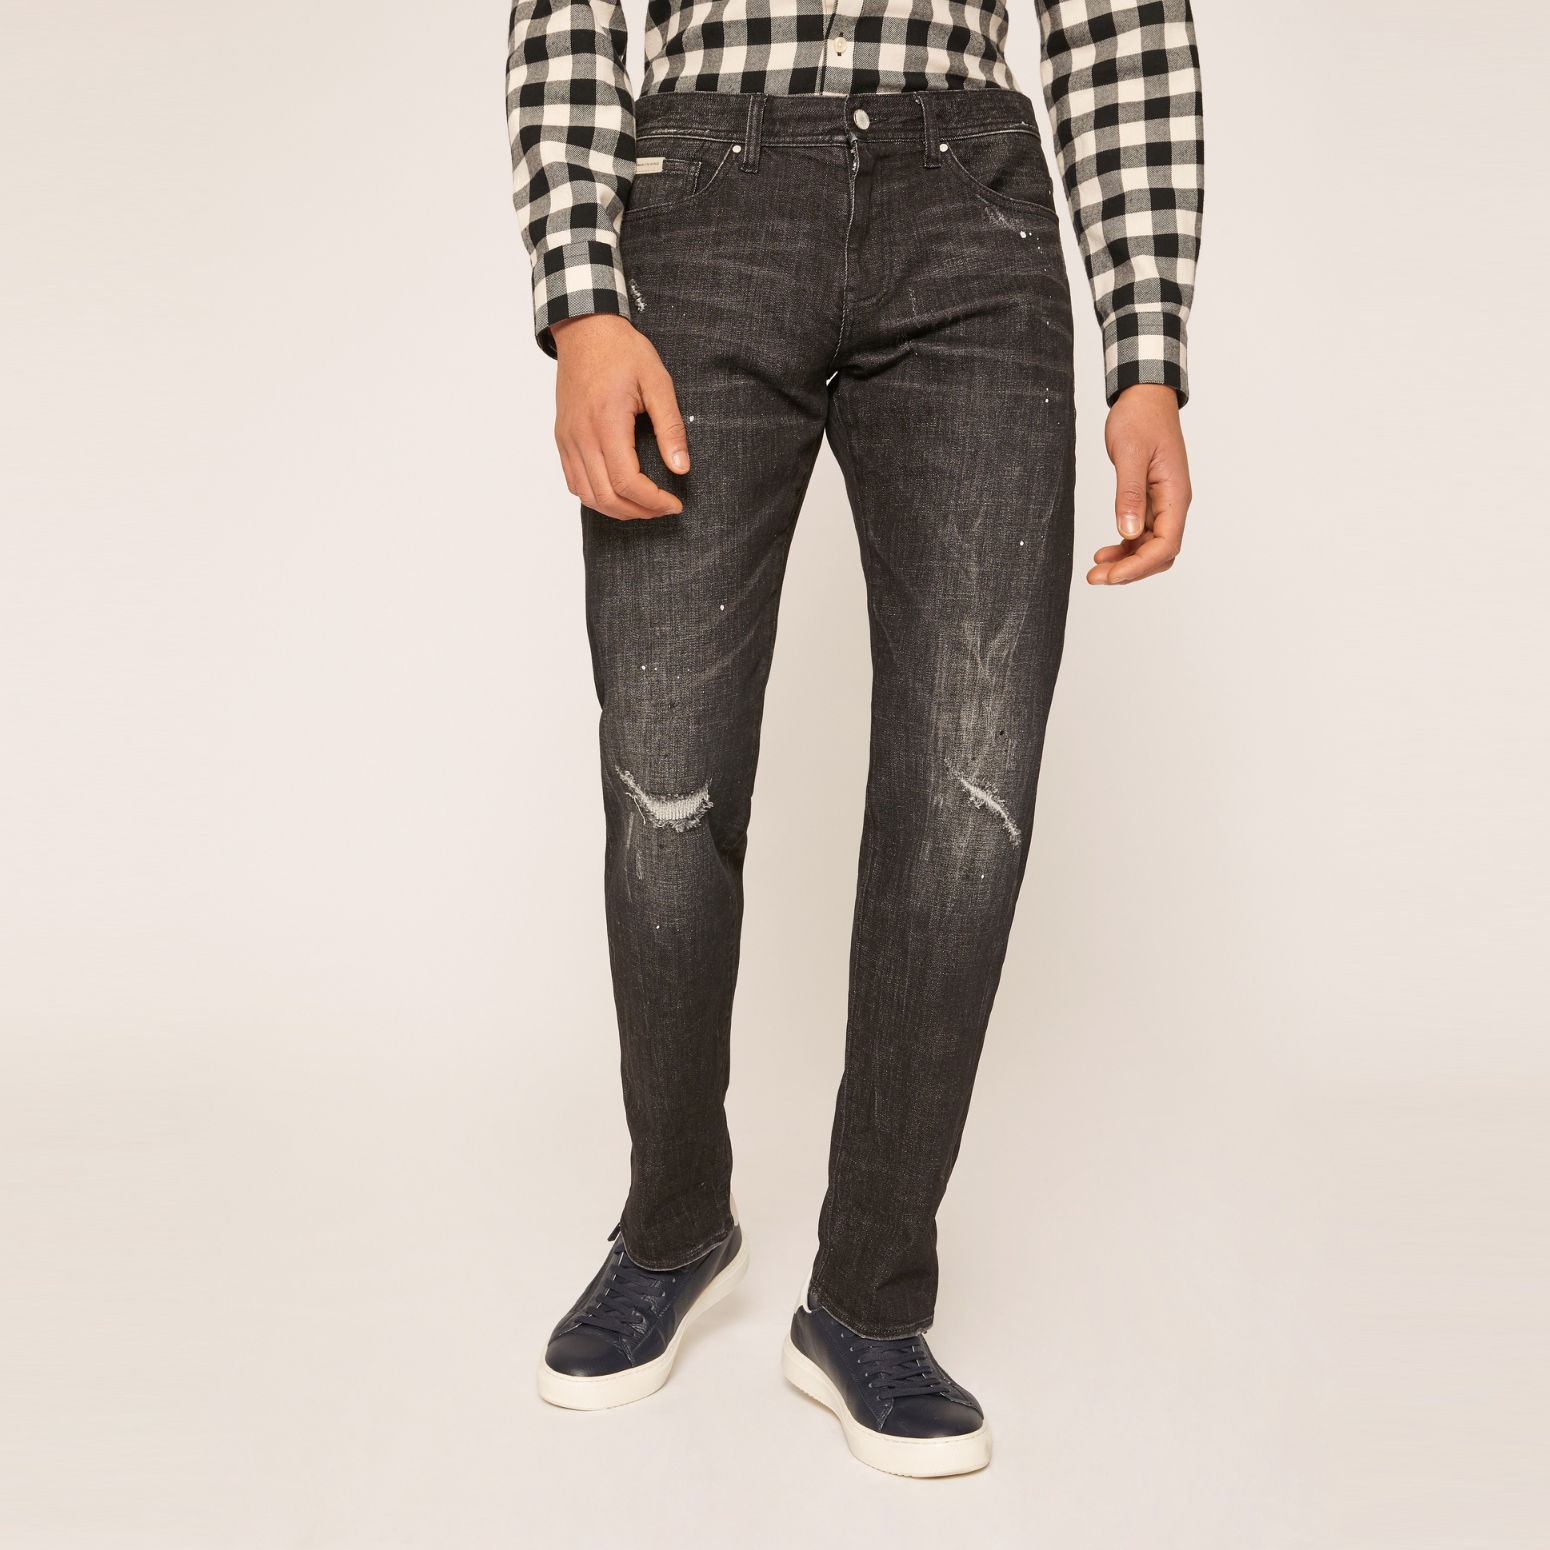 Armani Exchange Mens Clothing Accessories A X Store Baju Jeans By Henni Collection Denim